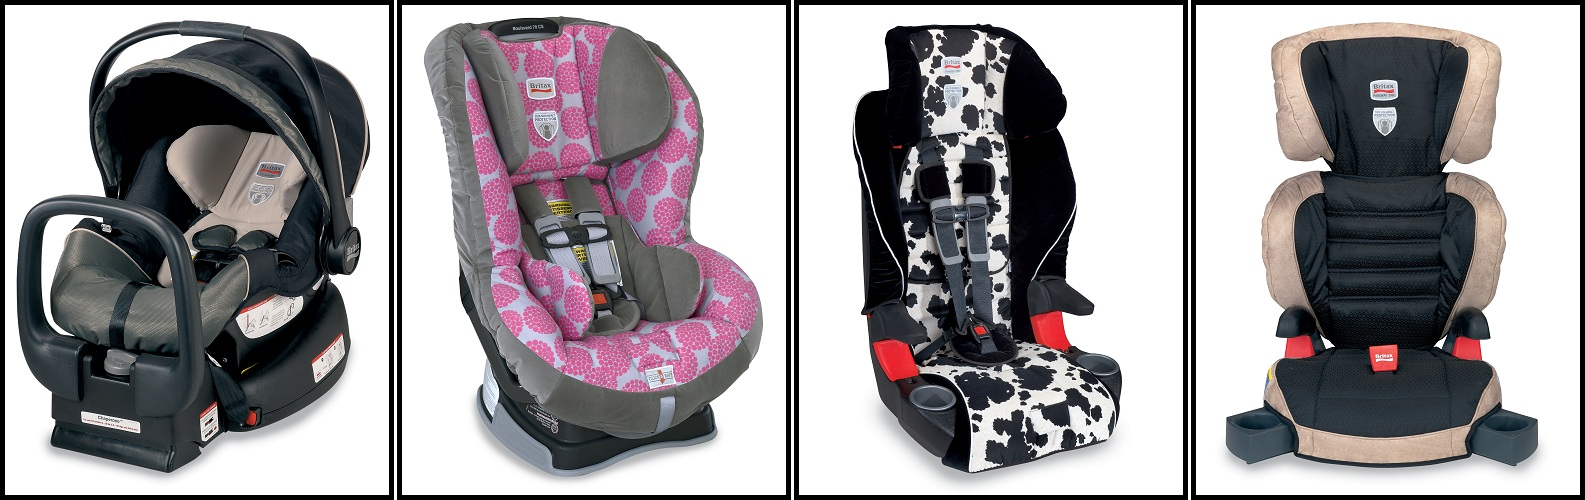 melbourne retail outlets for britax mirrors for light commerical vehicles britax car seat. Black Bedroom Furniture Sets. Home Design Ideas